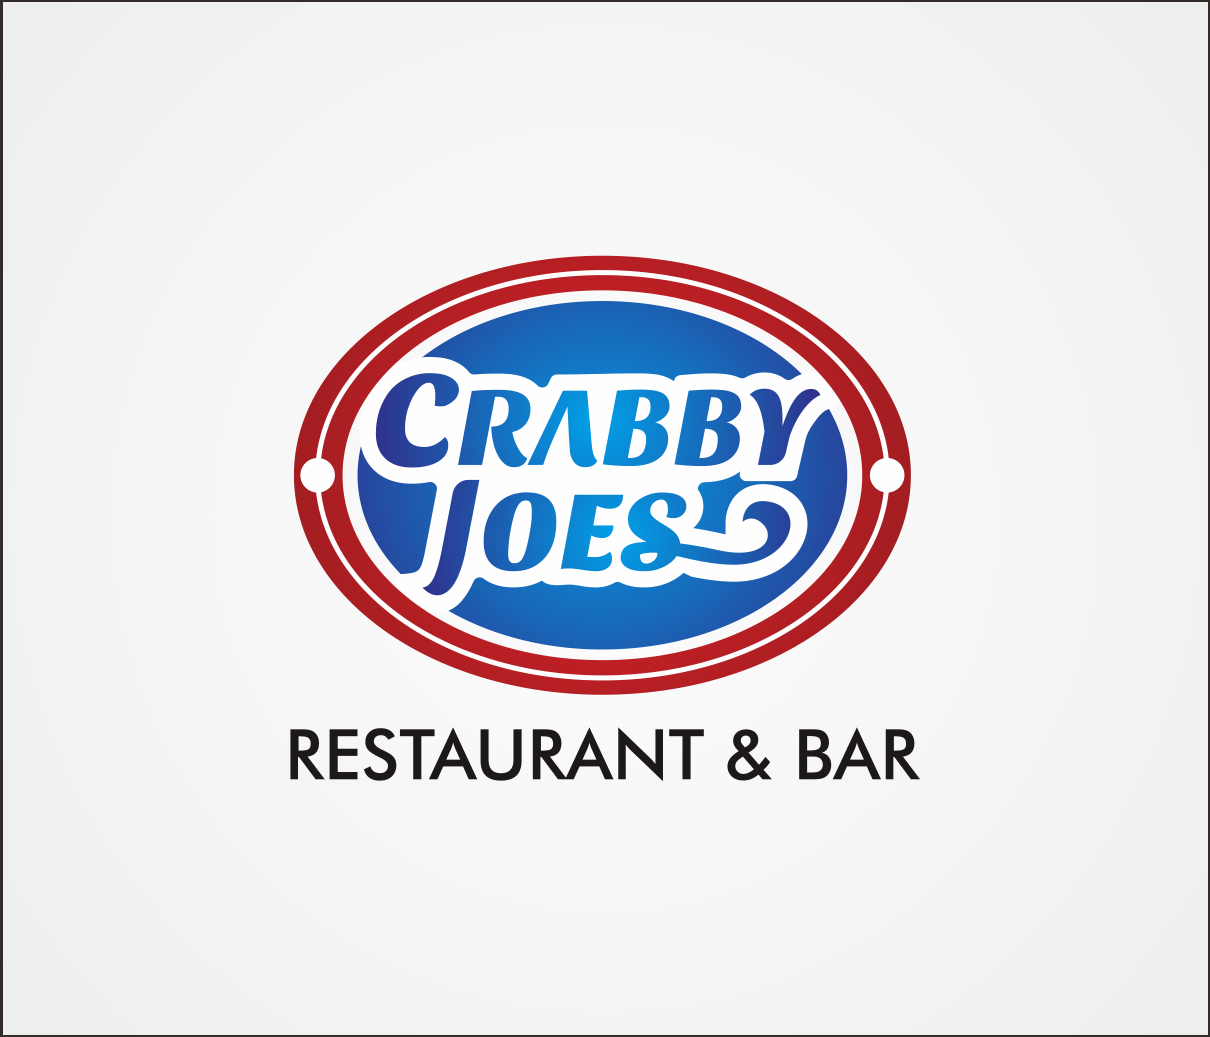 Logo Design by Armada Jamaluddin - Entry No. 121 in the Logo Design Contest Inspiring Logo Design for Cj's.